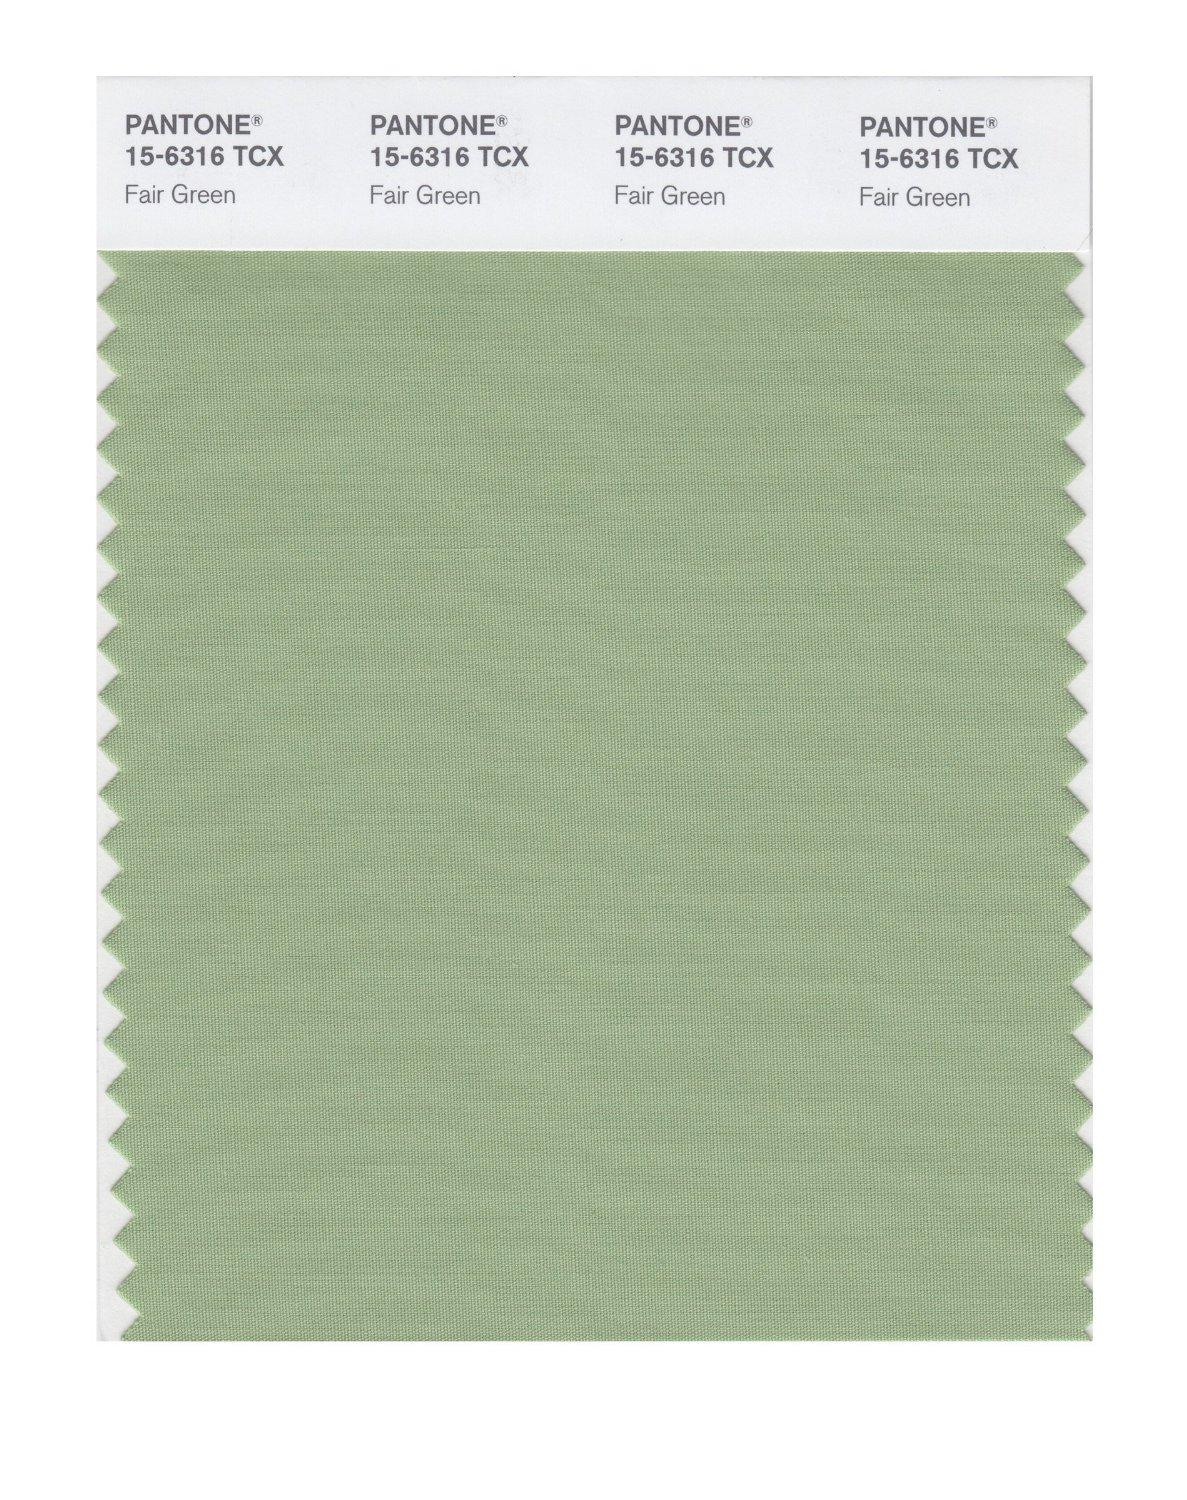 Pantone Smart Swatch 15-6316 Fair Green